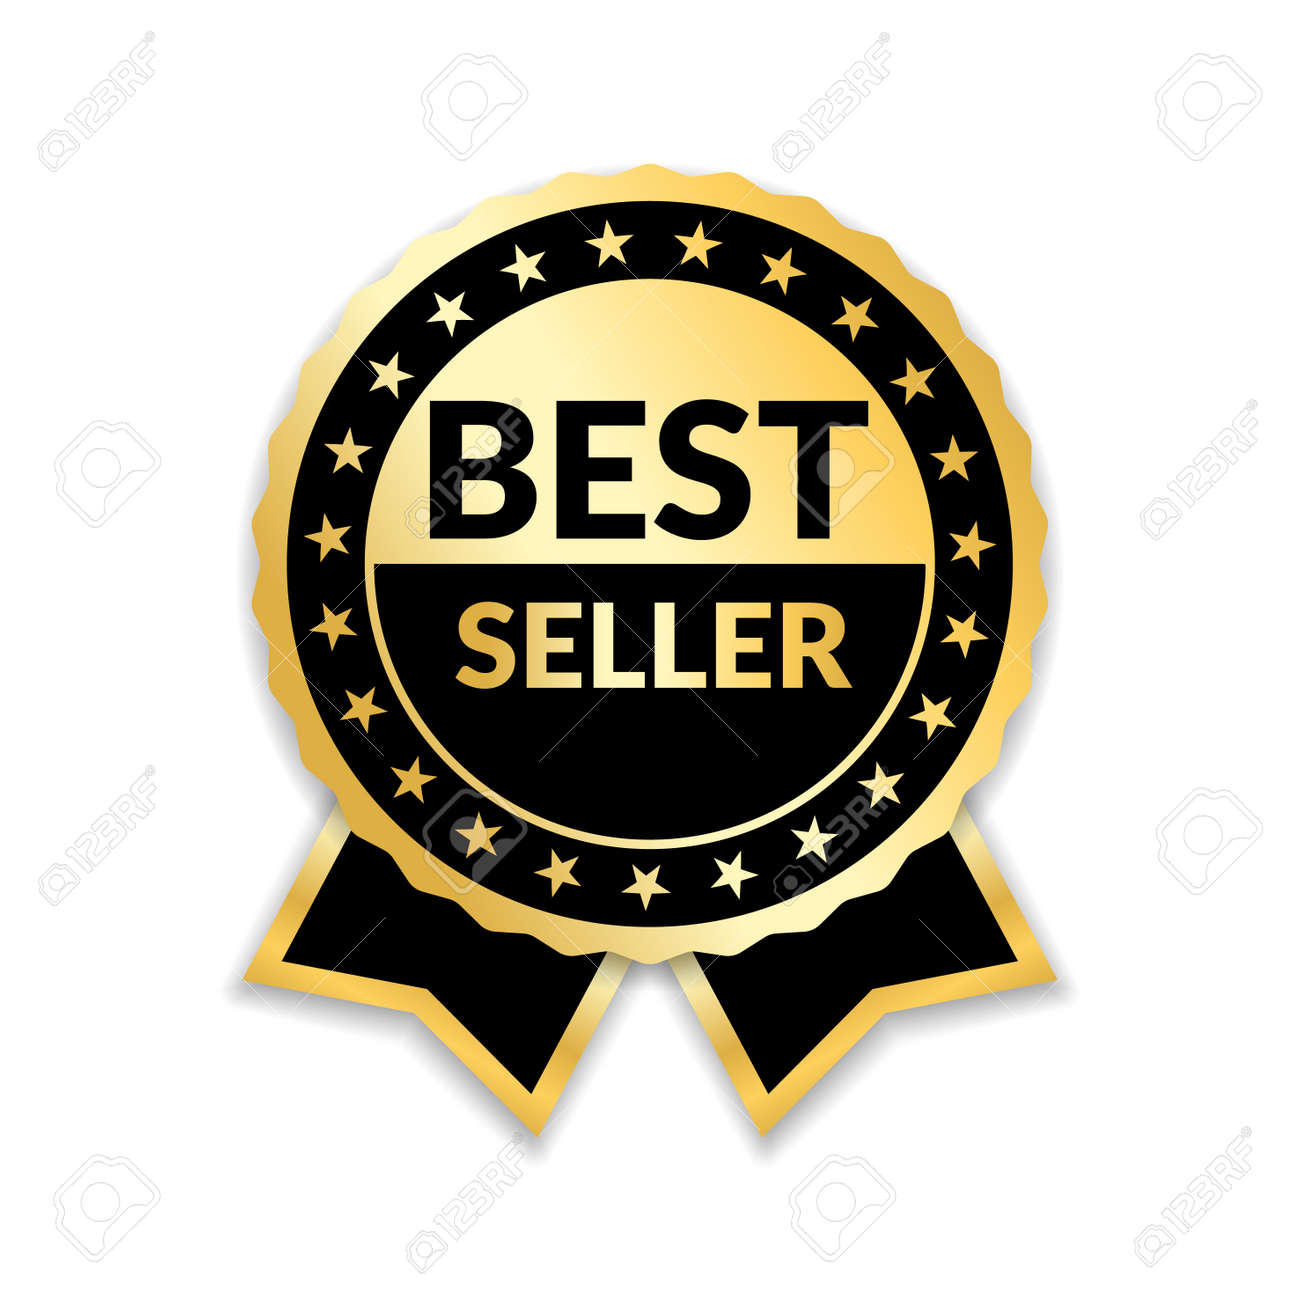 Ribbon award best seller. Gold ribbon award icon isolated white background. Bestseller golden tag sale label, badge, medal, guarantee quality product, business certificate Vector illustration - 99814152